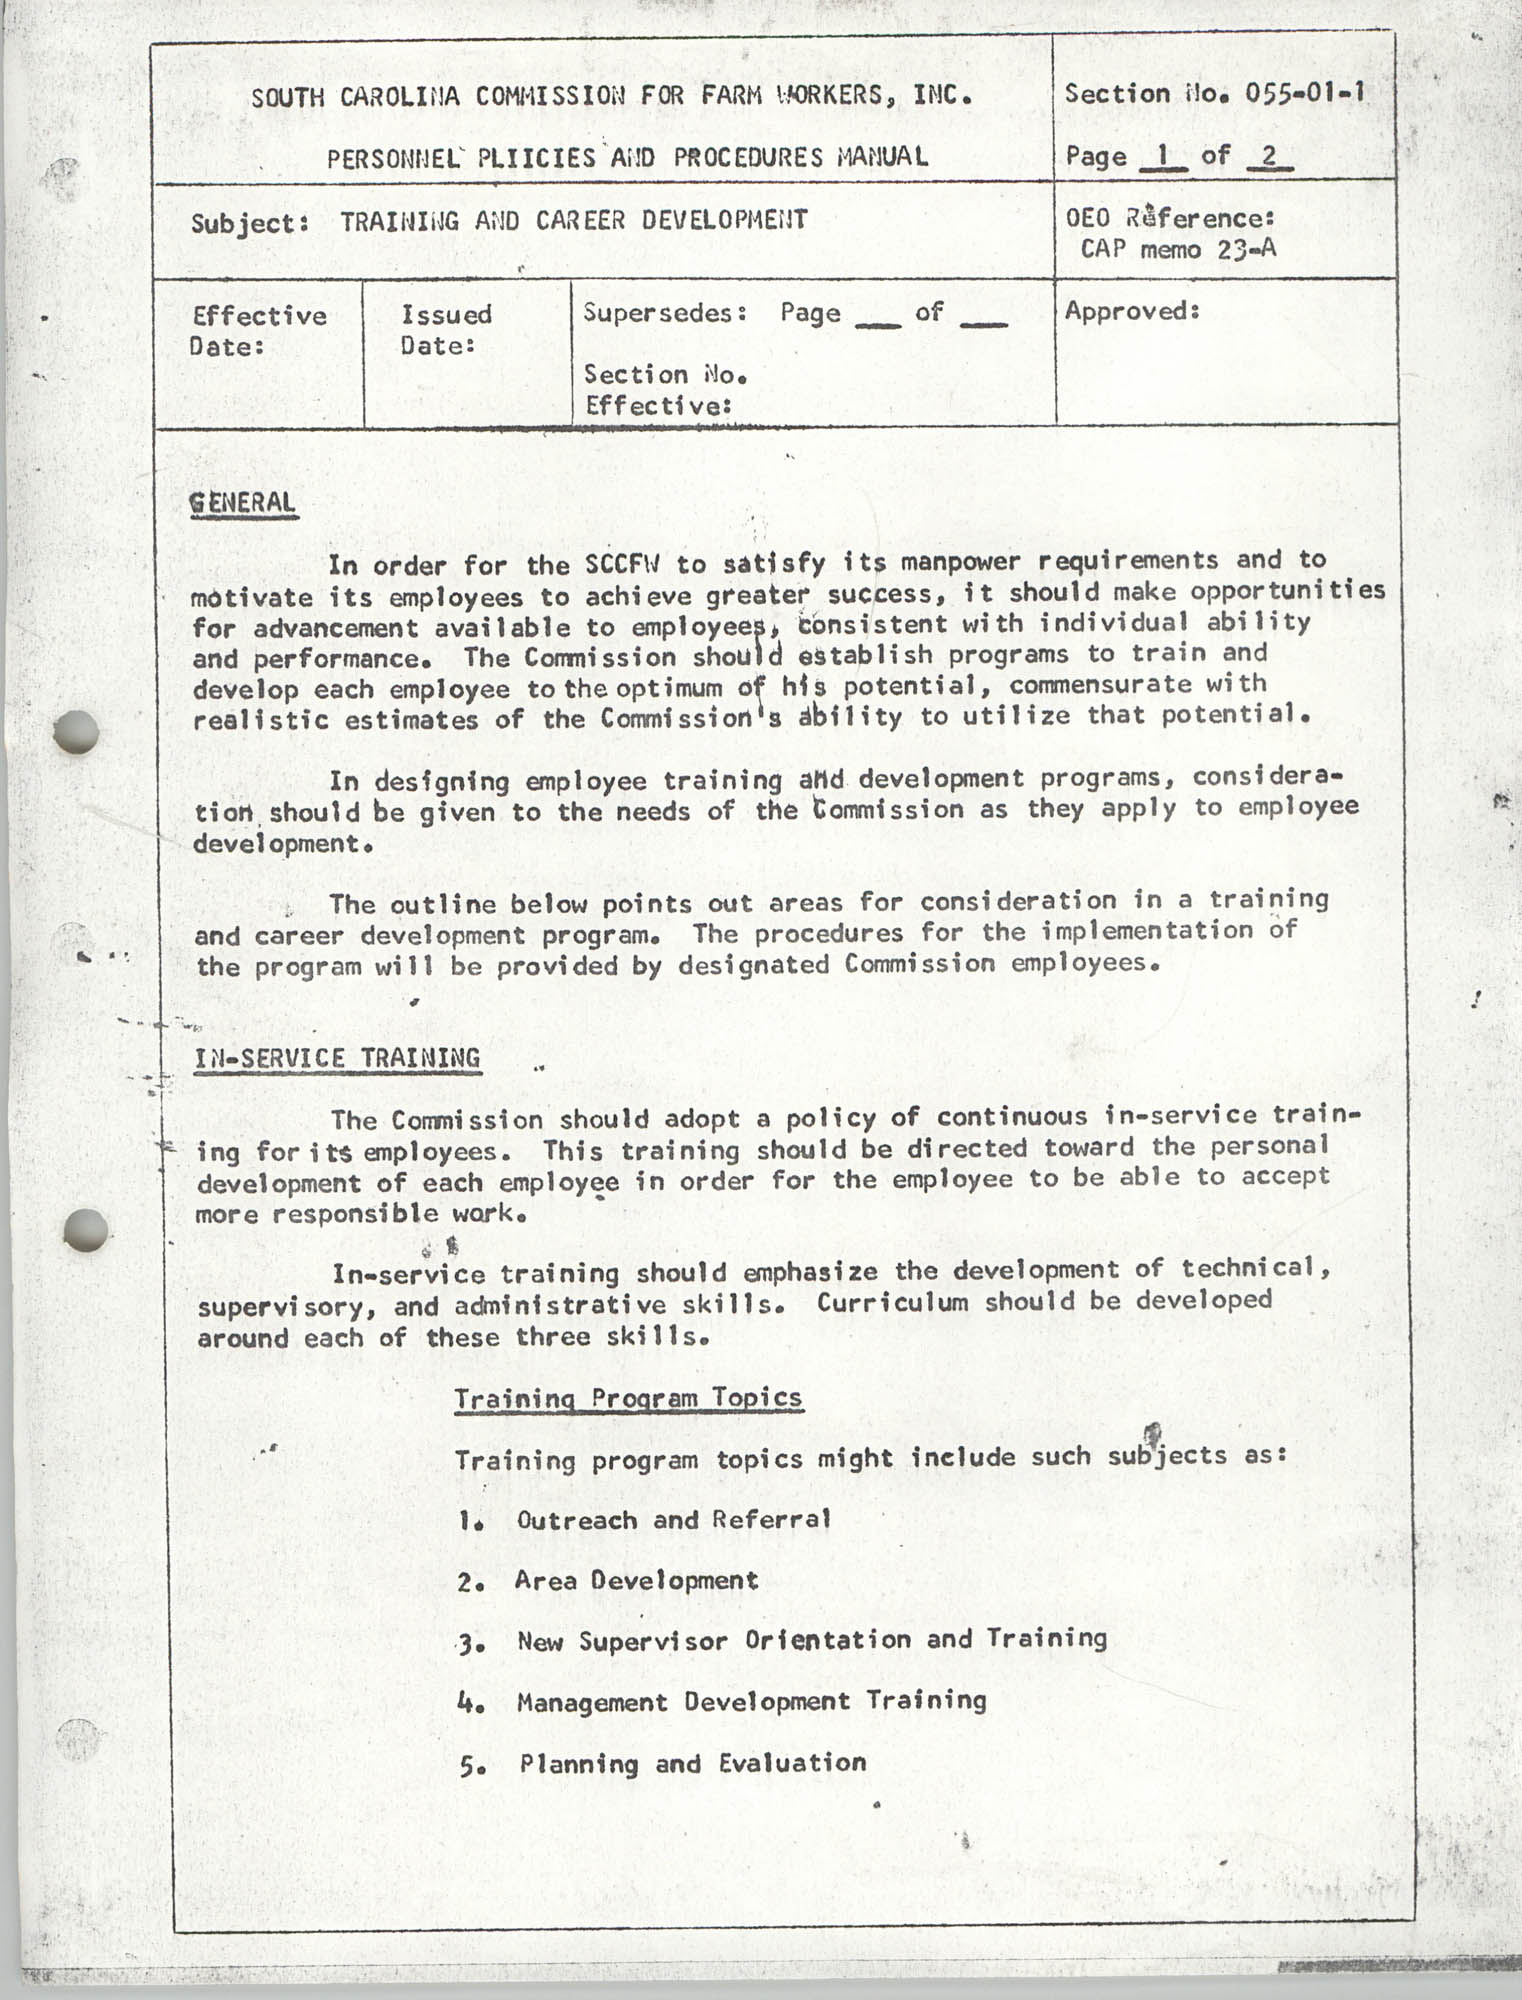 Personnel Policies and Procedures Manual, Section No. 055-01-1, Page 1